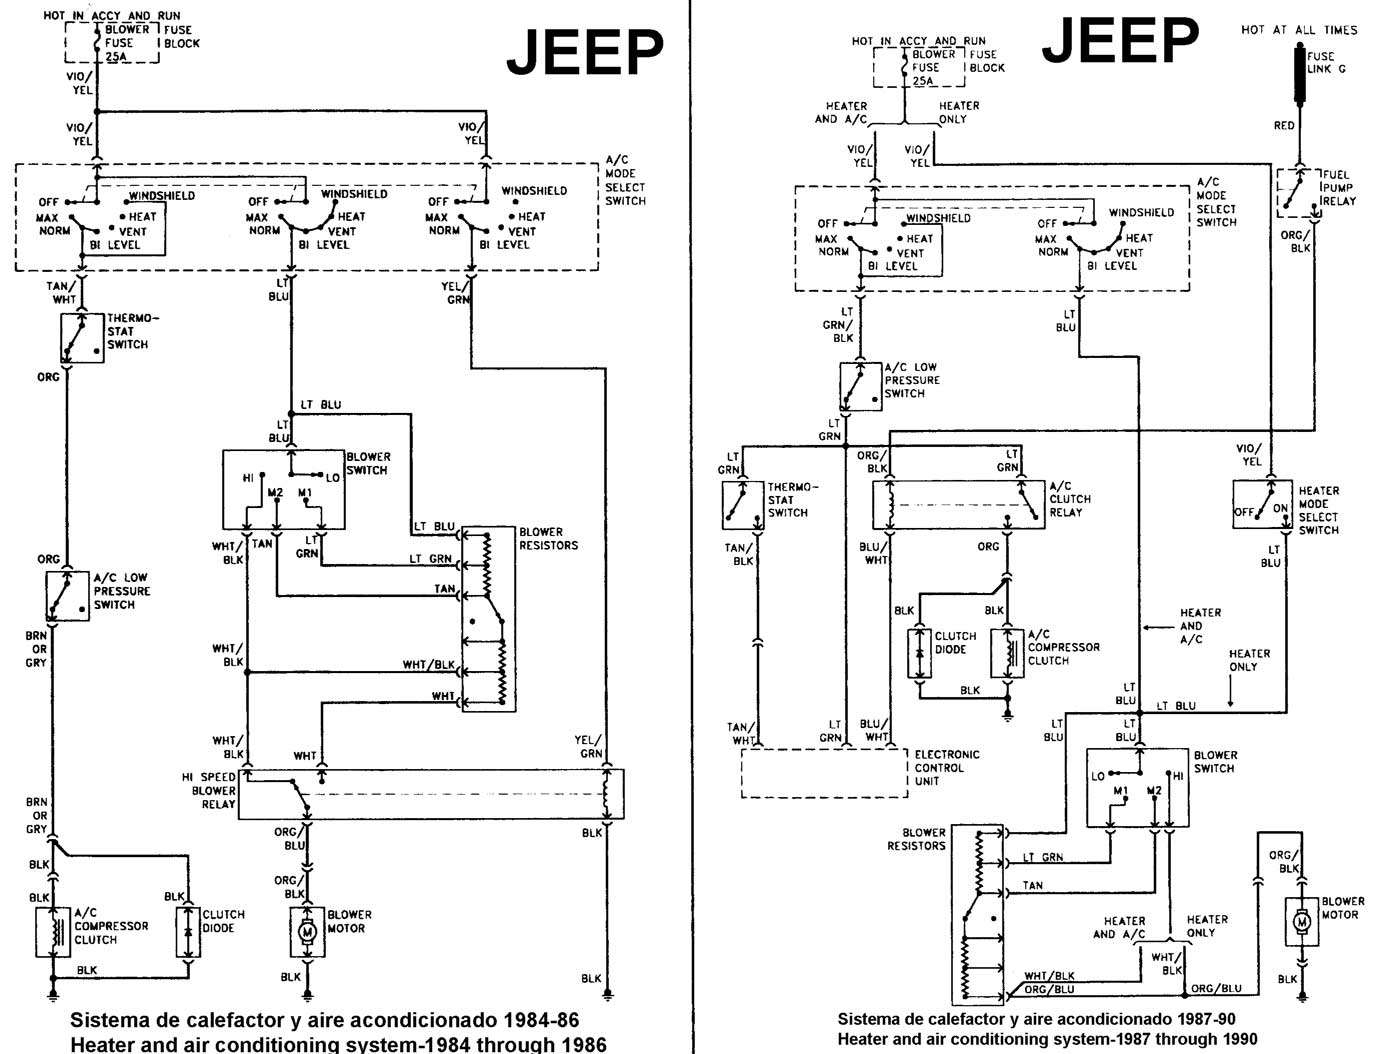 Wiring Diagram 2003 Jeep Liberty Sport. Jeep. Auto Wiring